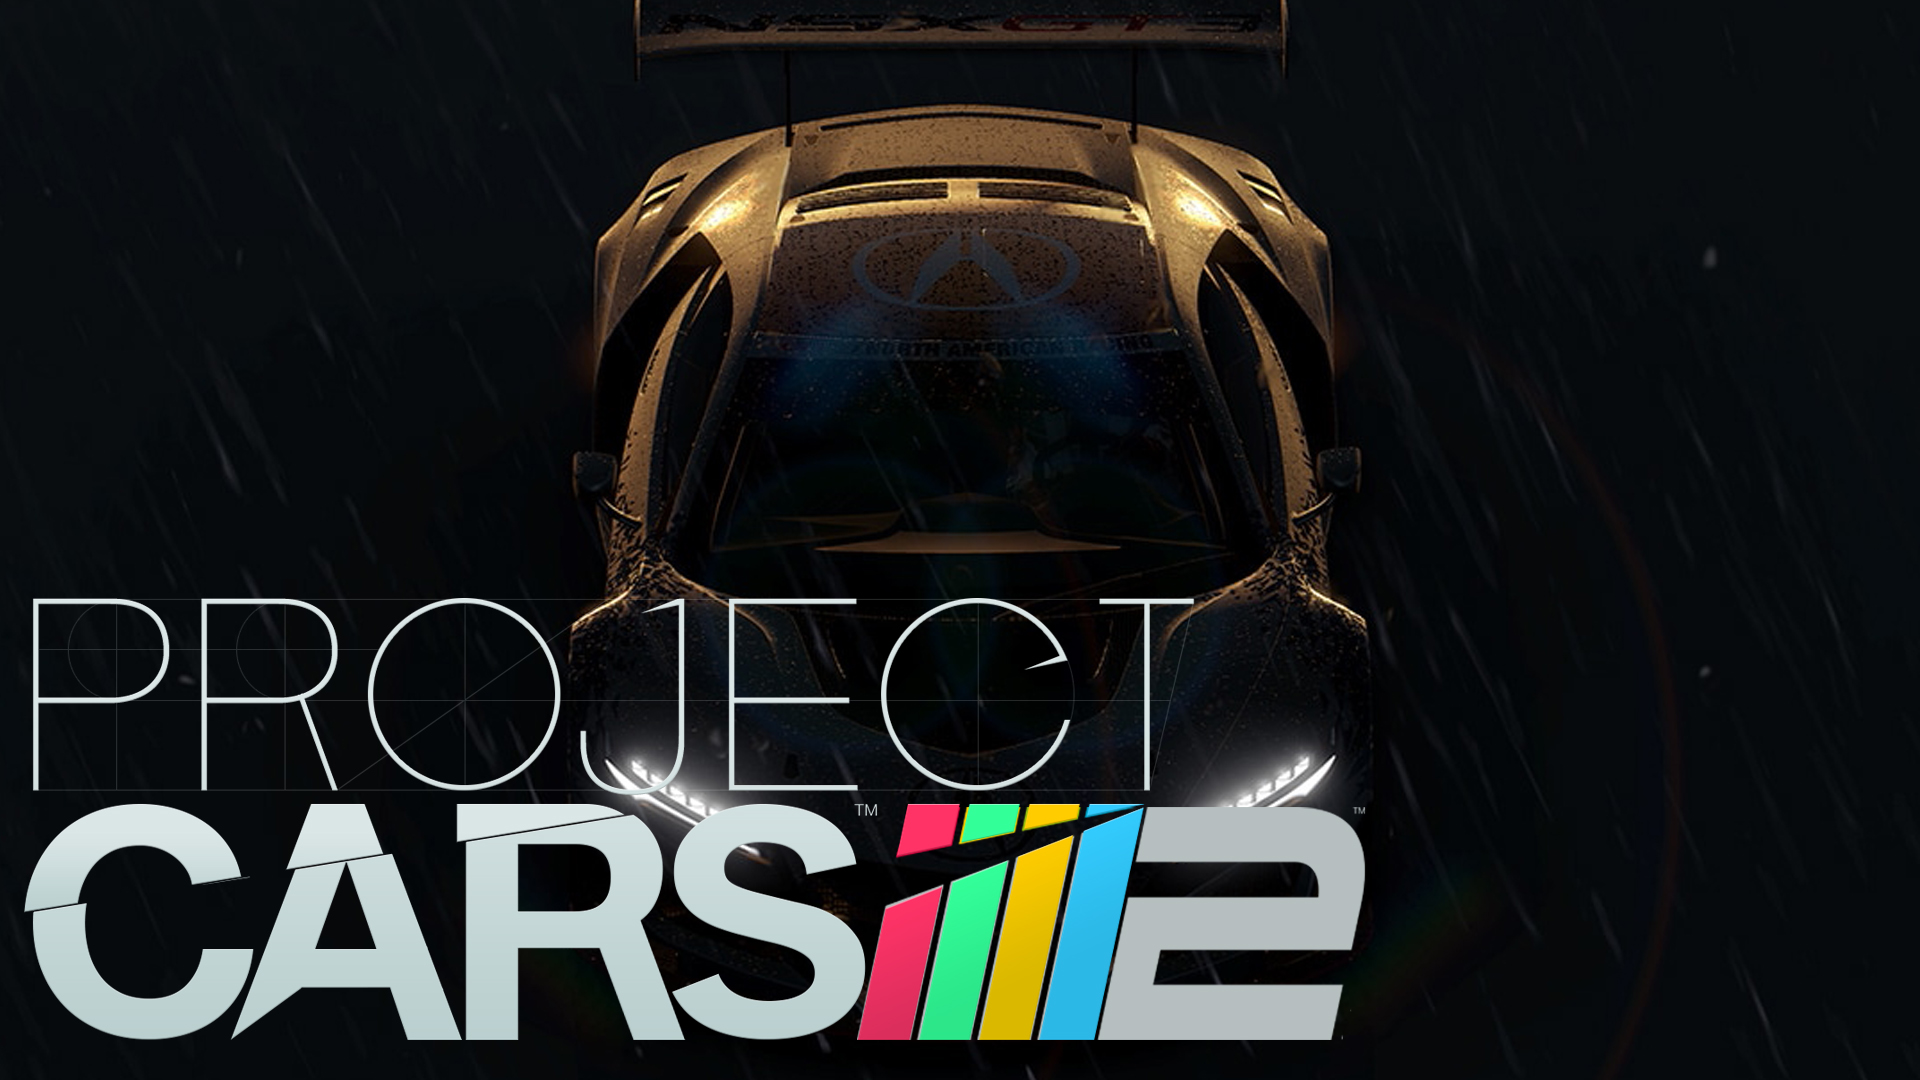 Ferrari Makes Its Presence Known In Project Cars 2 Hey